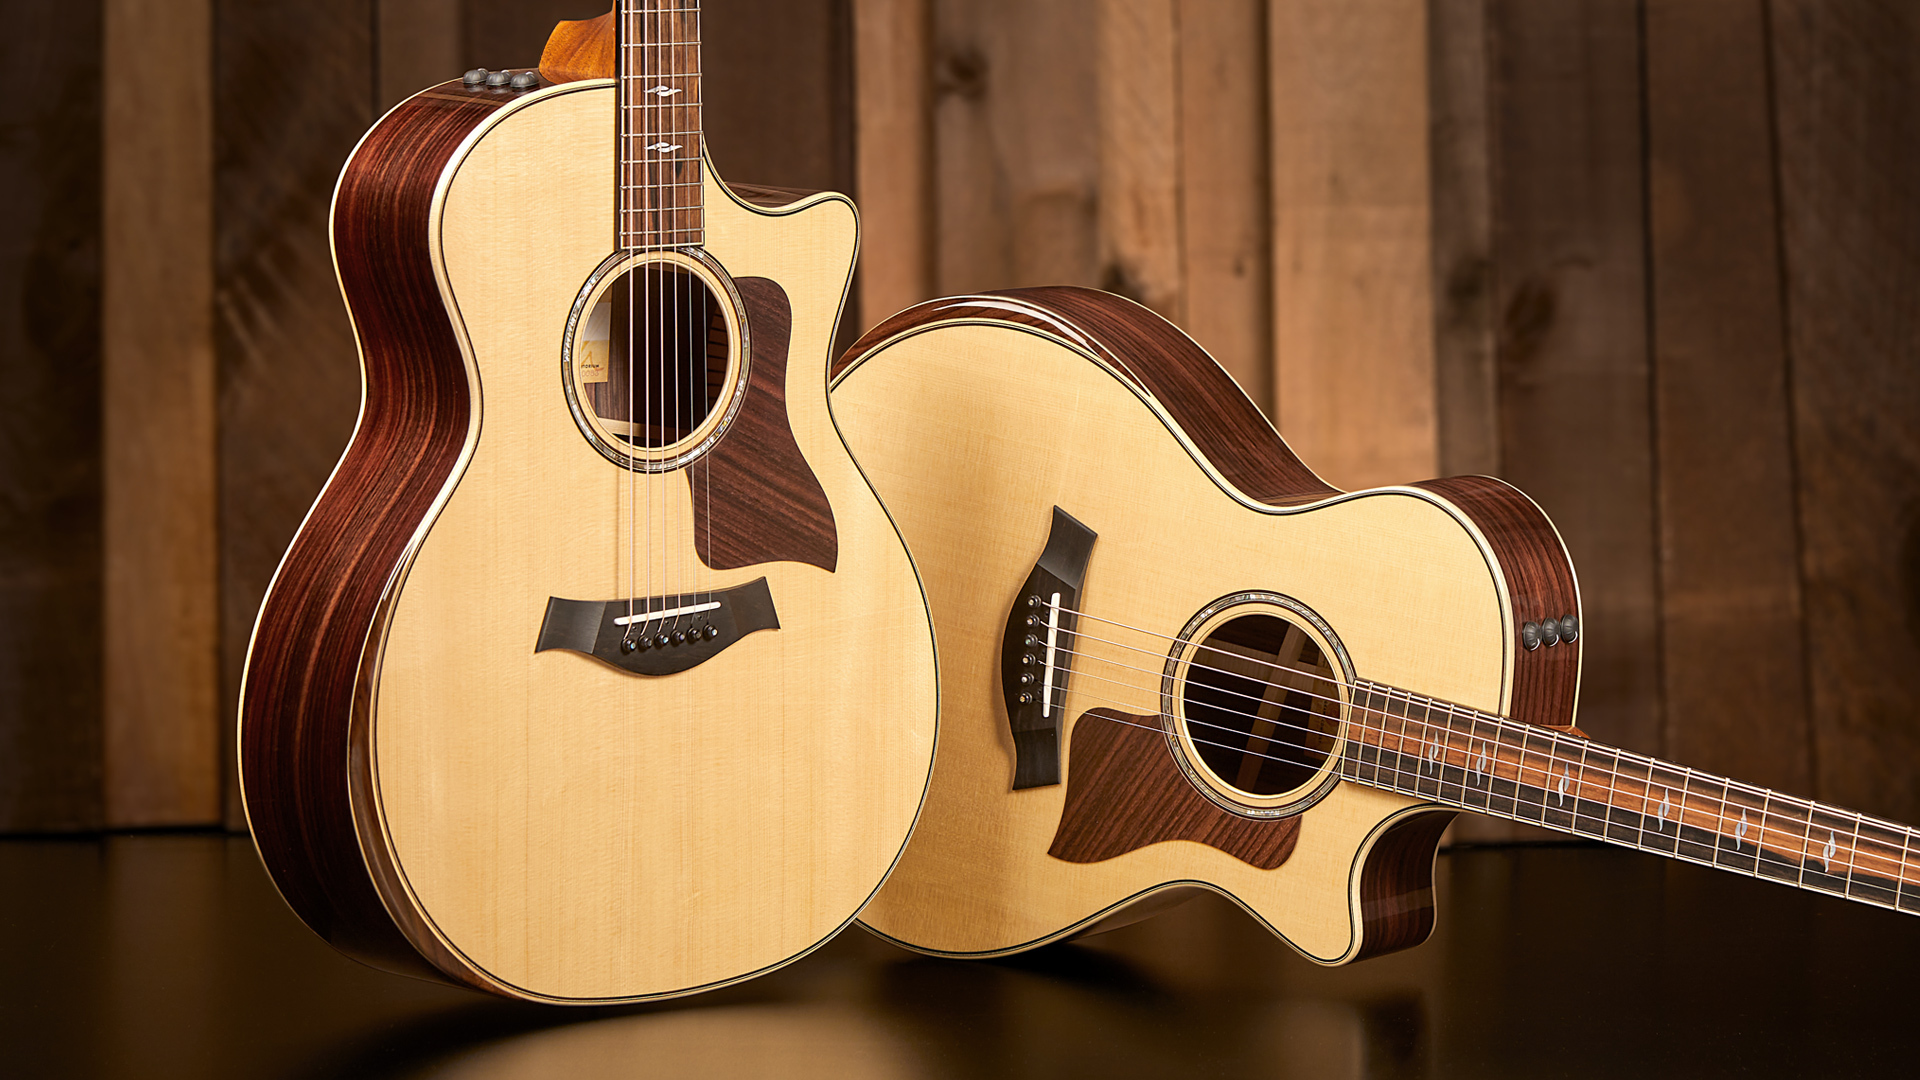 two taylor acoustic guitars, one standing and one leaning, facing front to display body shapes